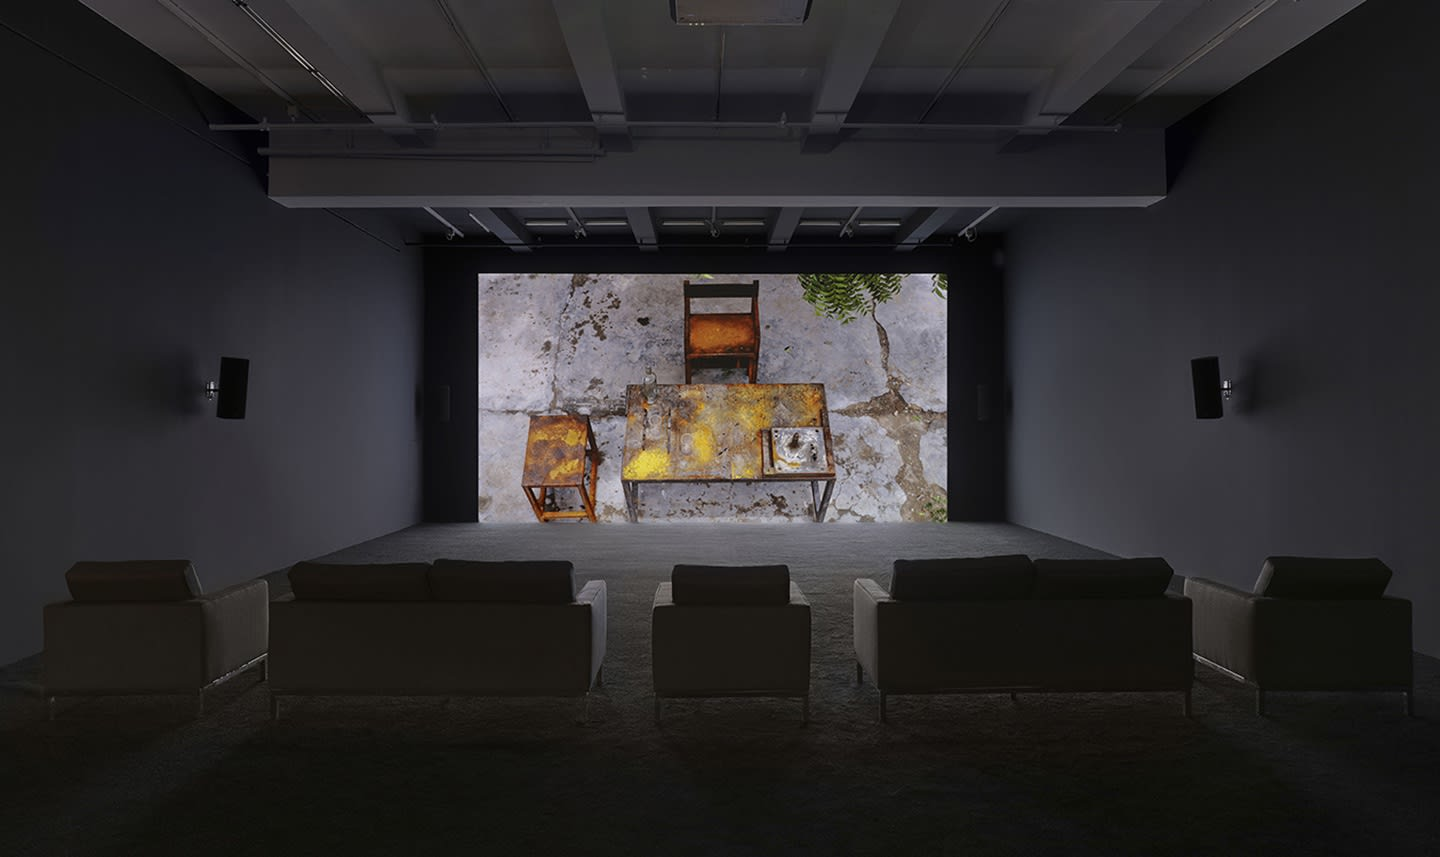 Various couches sit in front of a projection of a wooden table and chair in an outdoor setting.